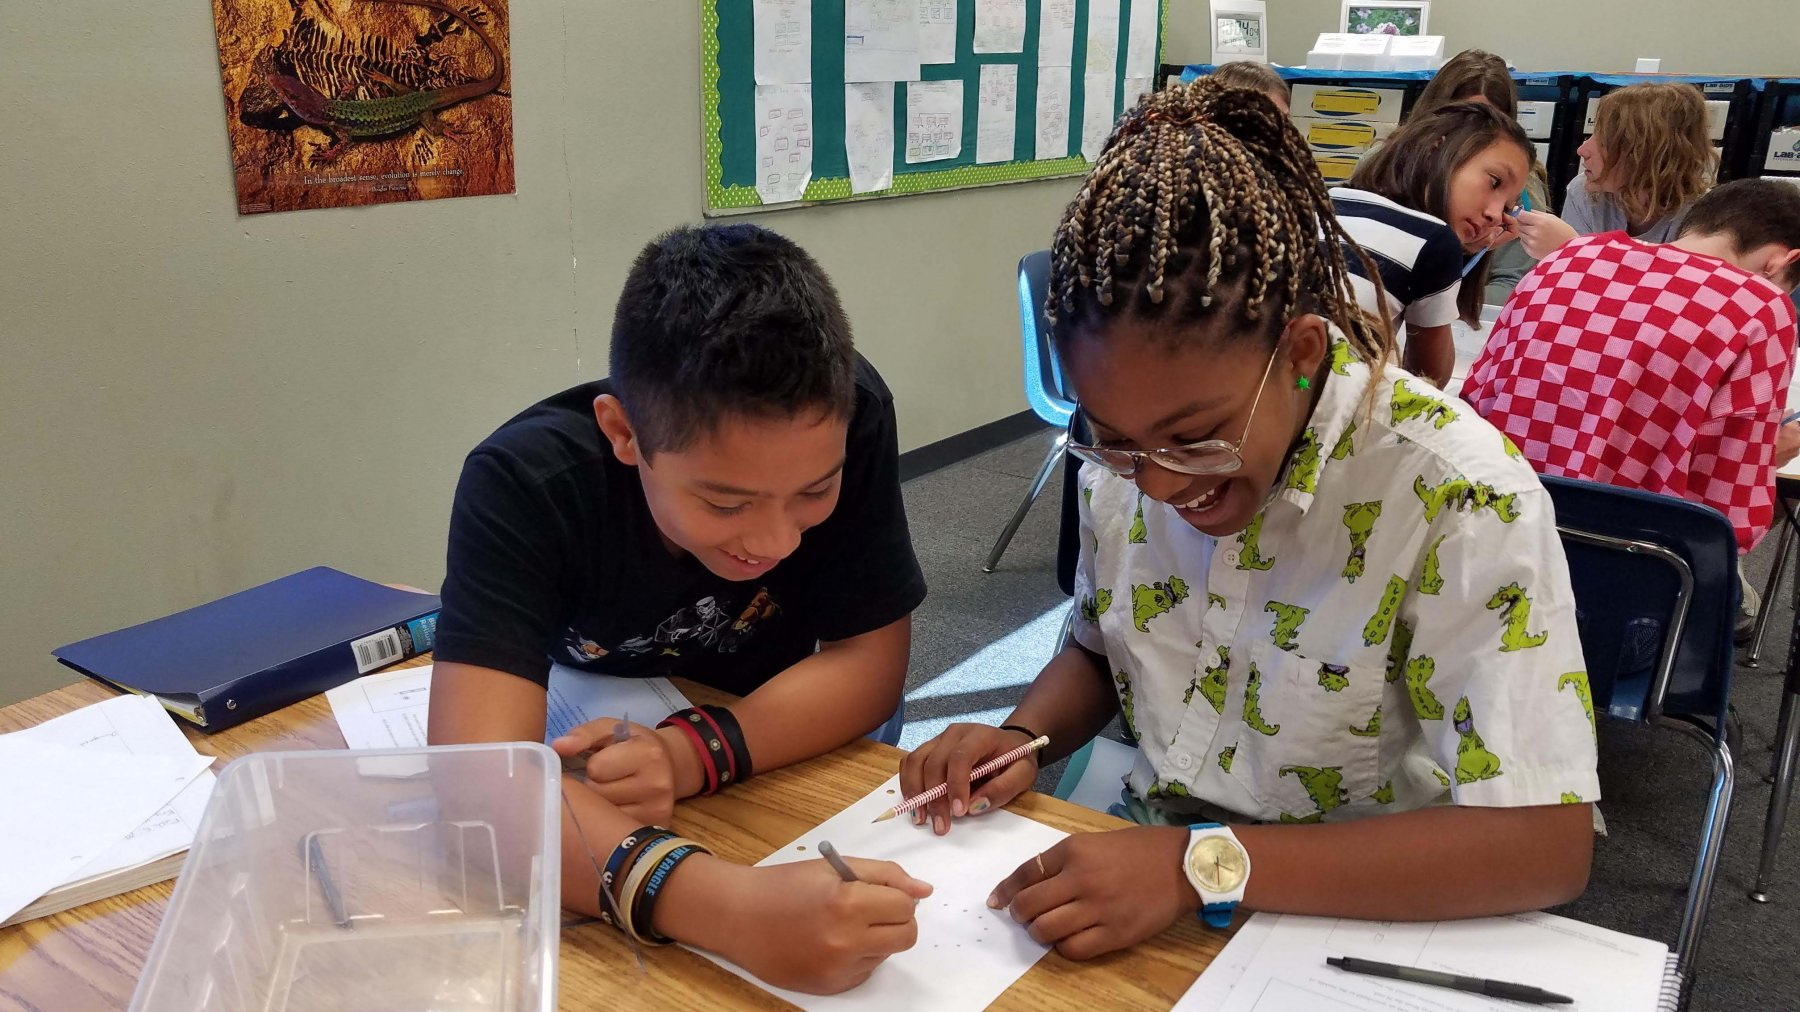 MS Students smile in science classroom lab partners